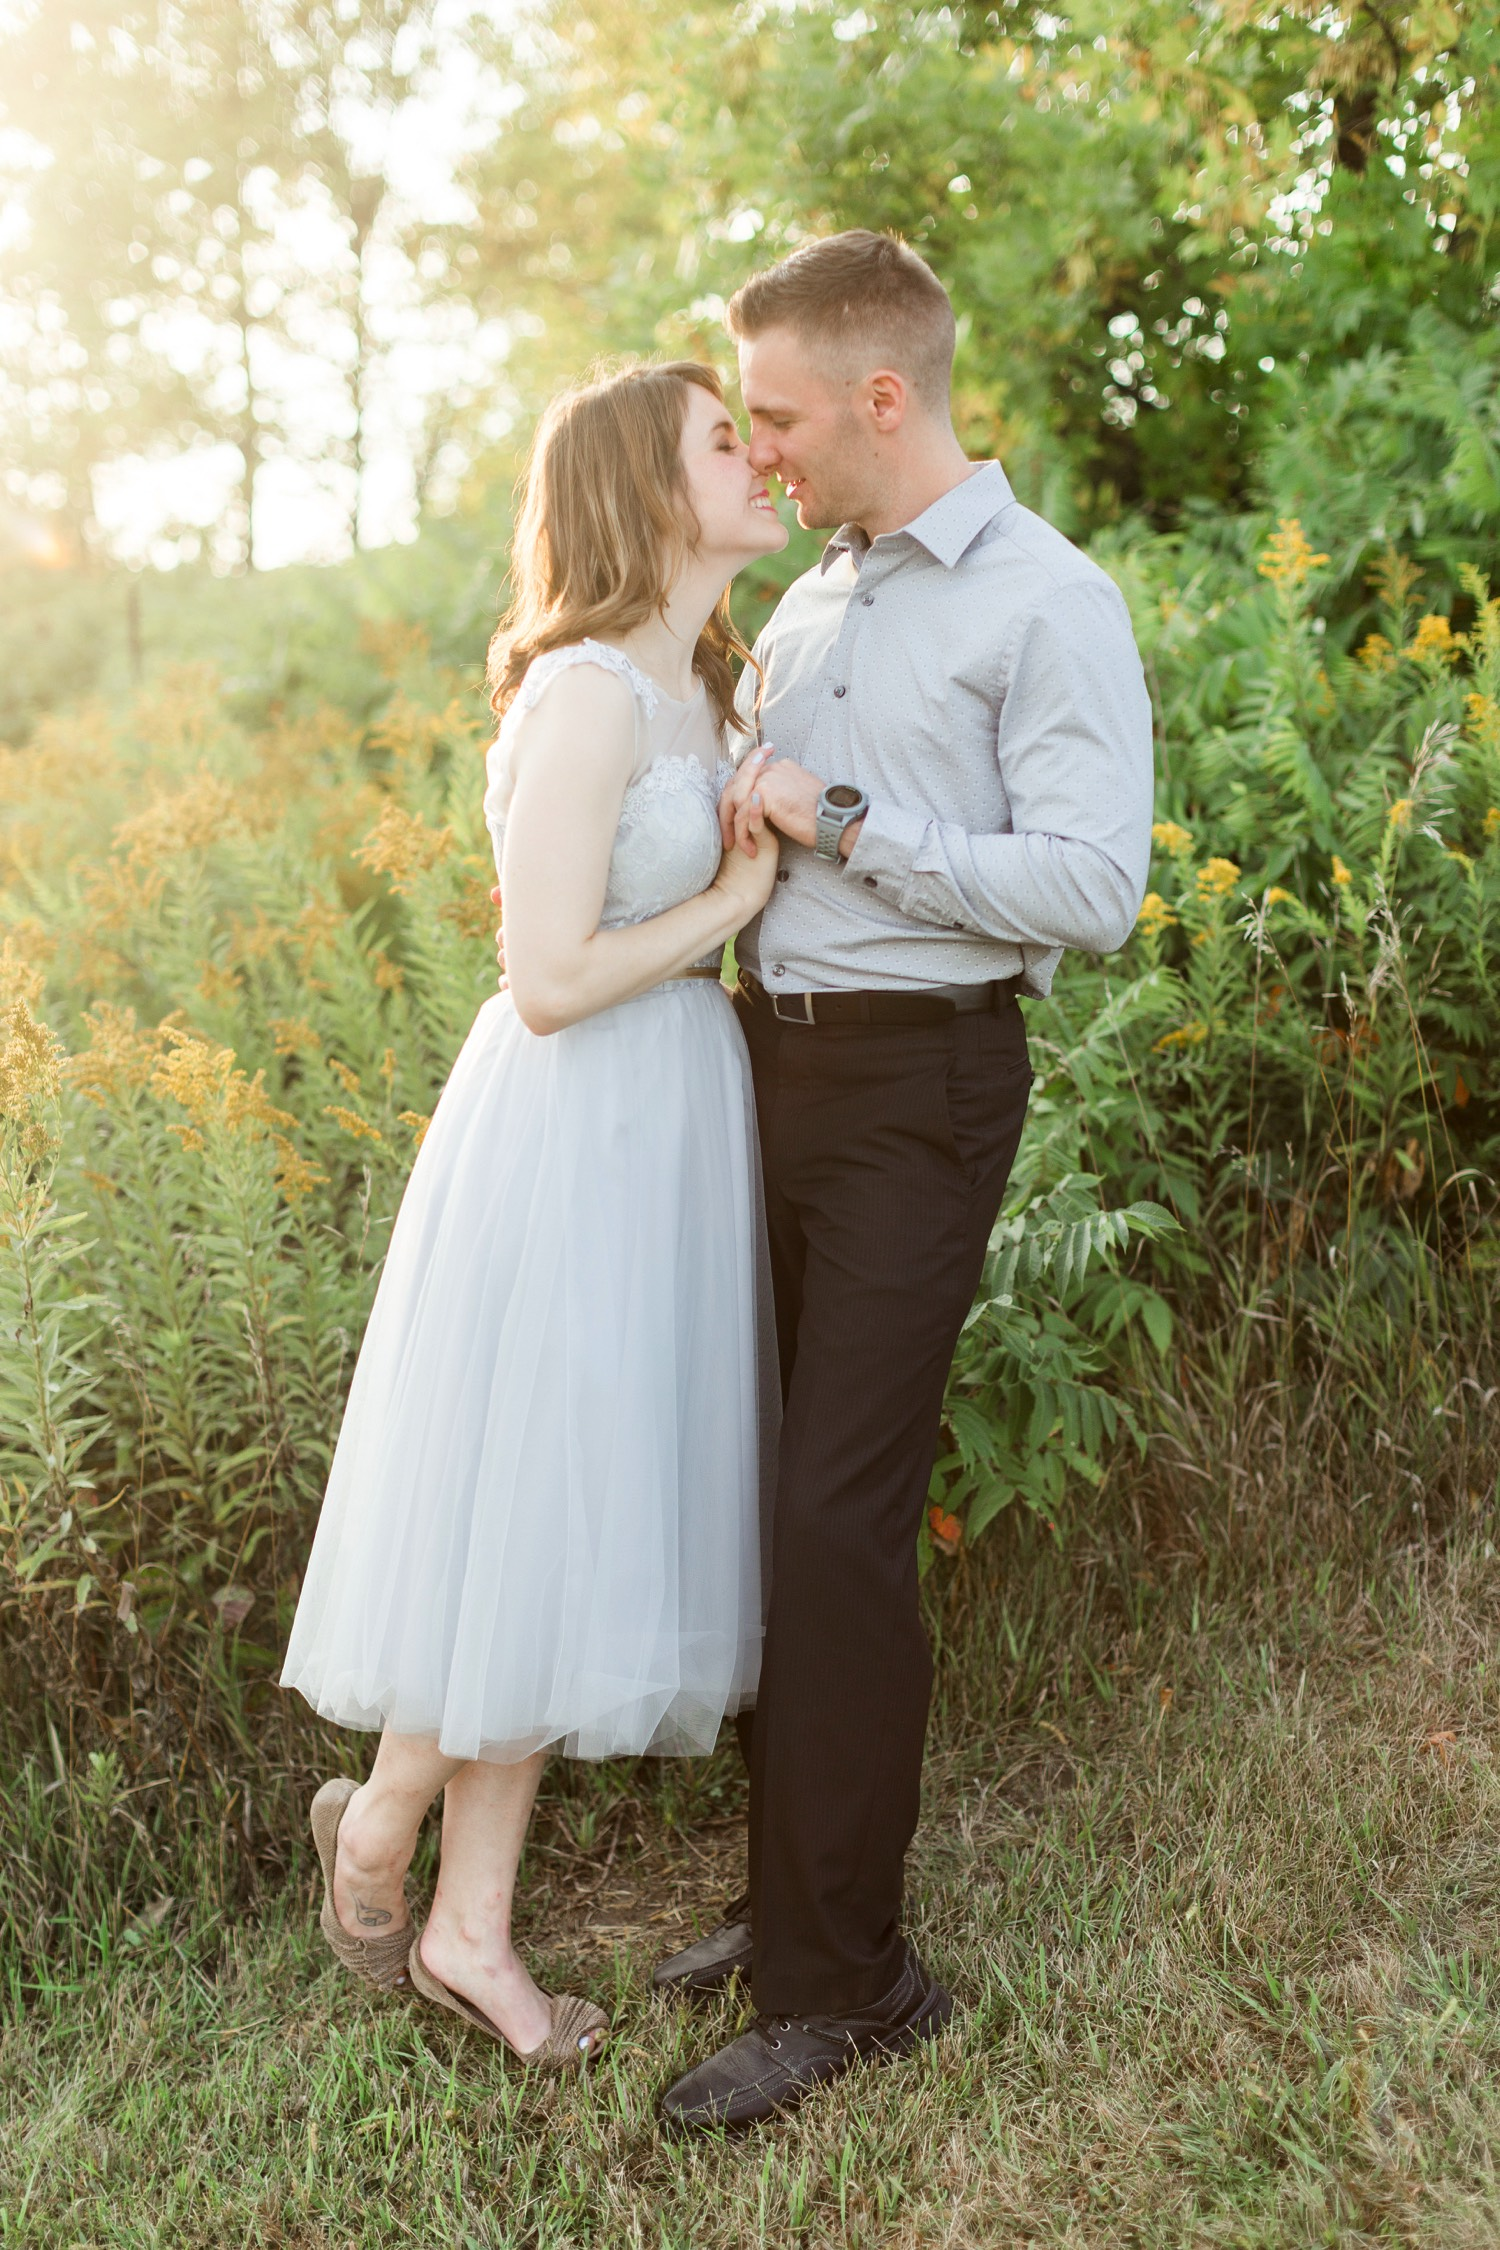 005_Abigail Berge Photography-Engagement-57.jpg